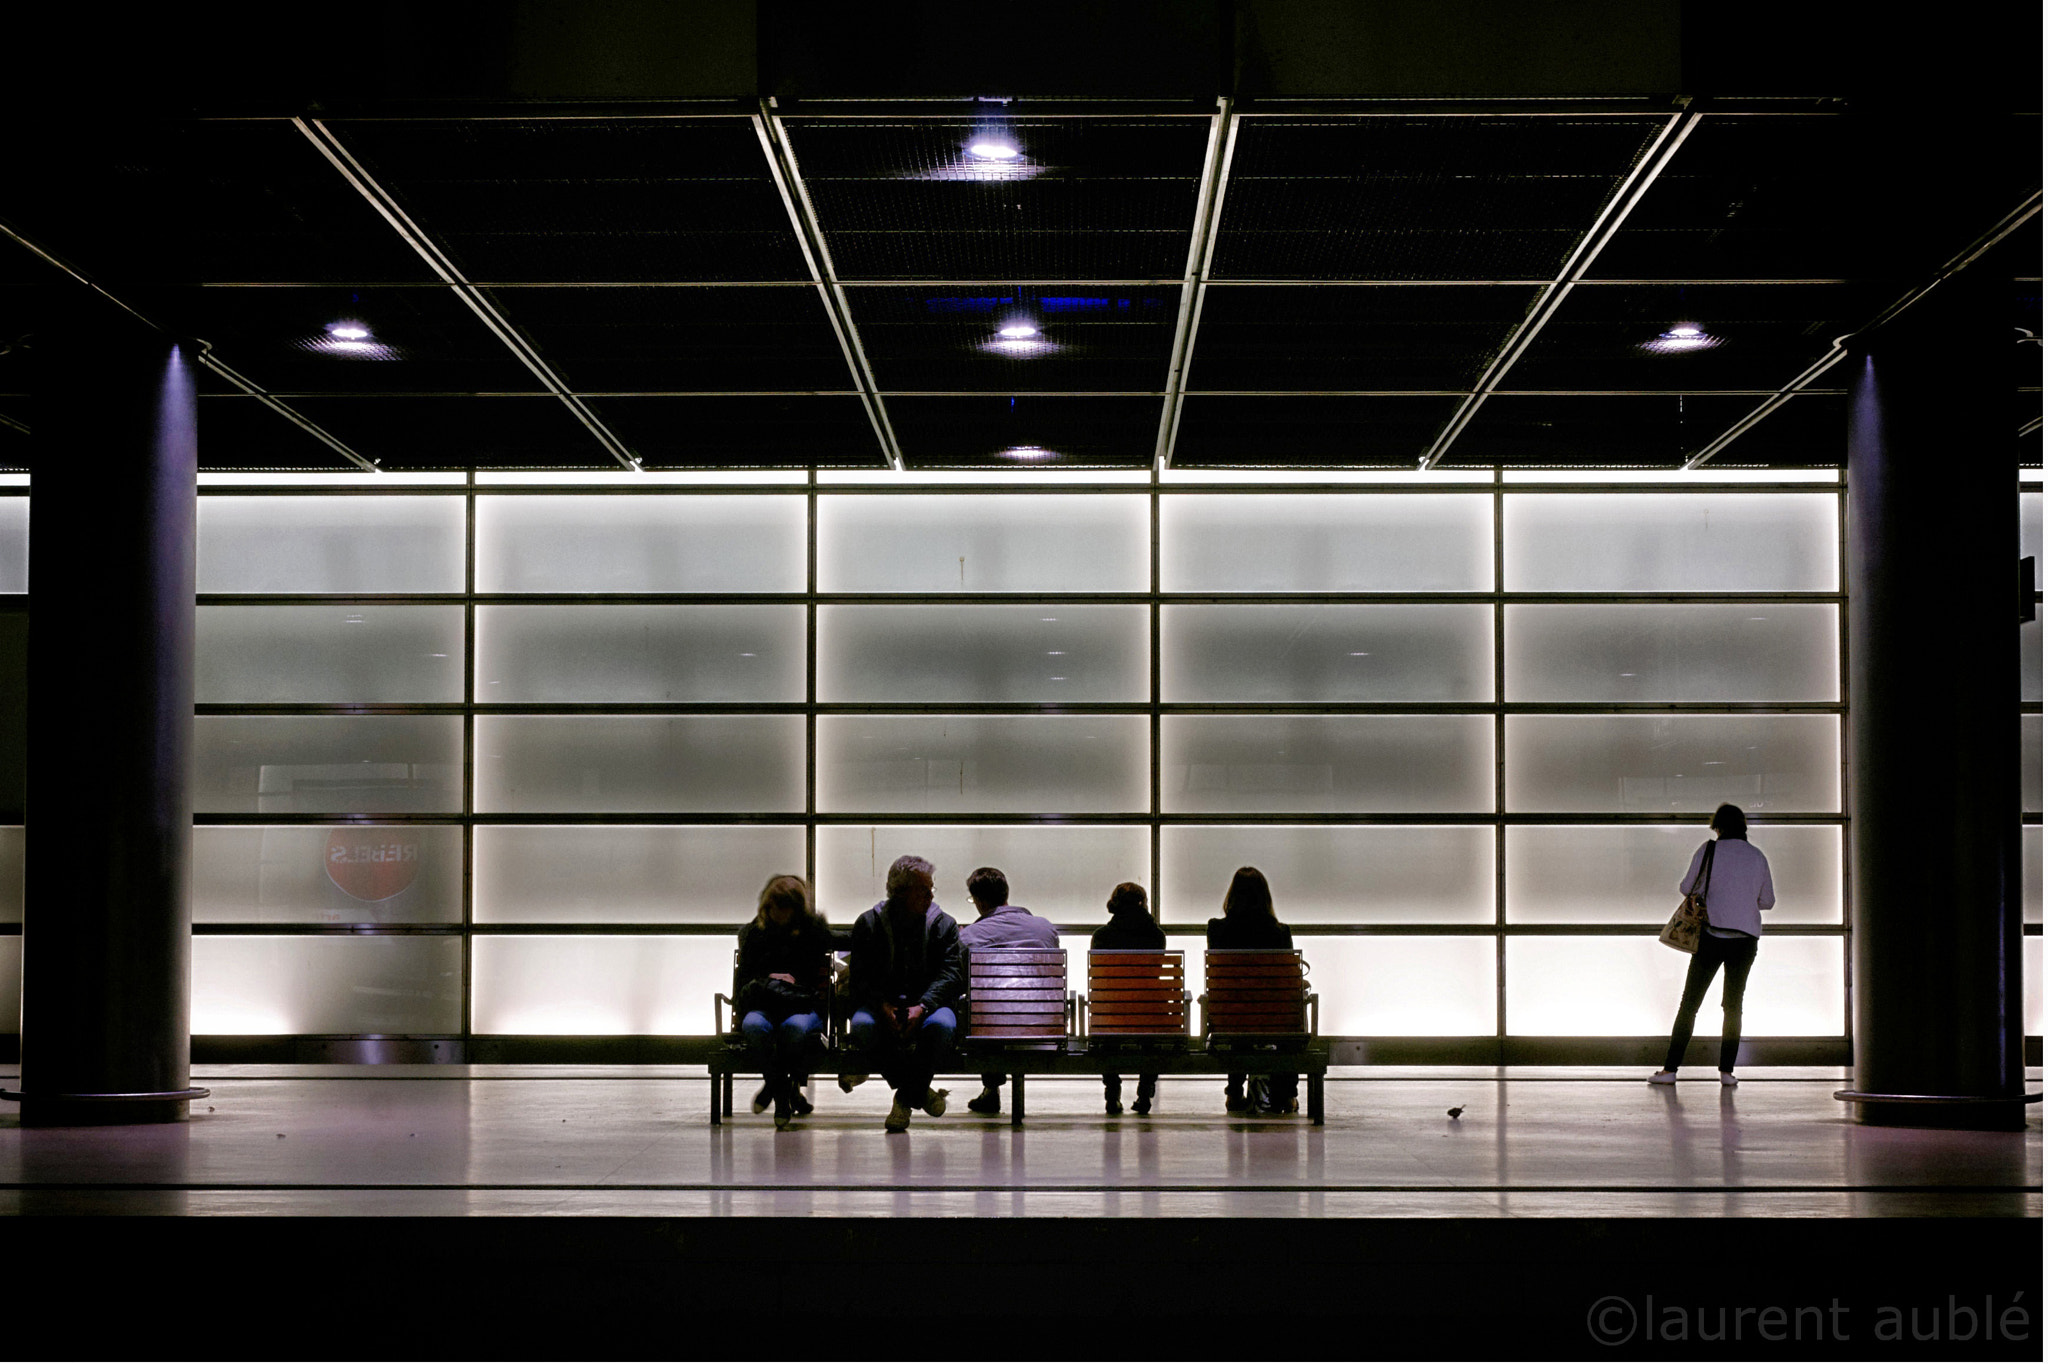 Photograph 4 women, 2 men and 1 hungry bird waiting for the next train by laurent aublé on 500px